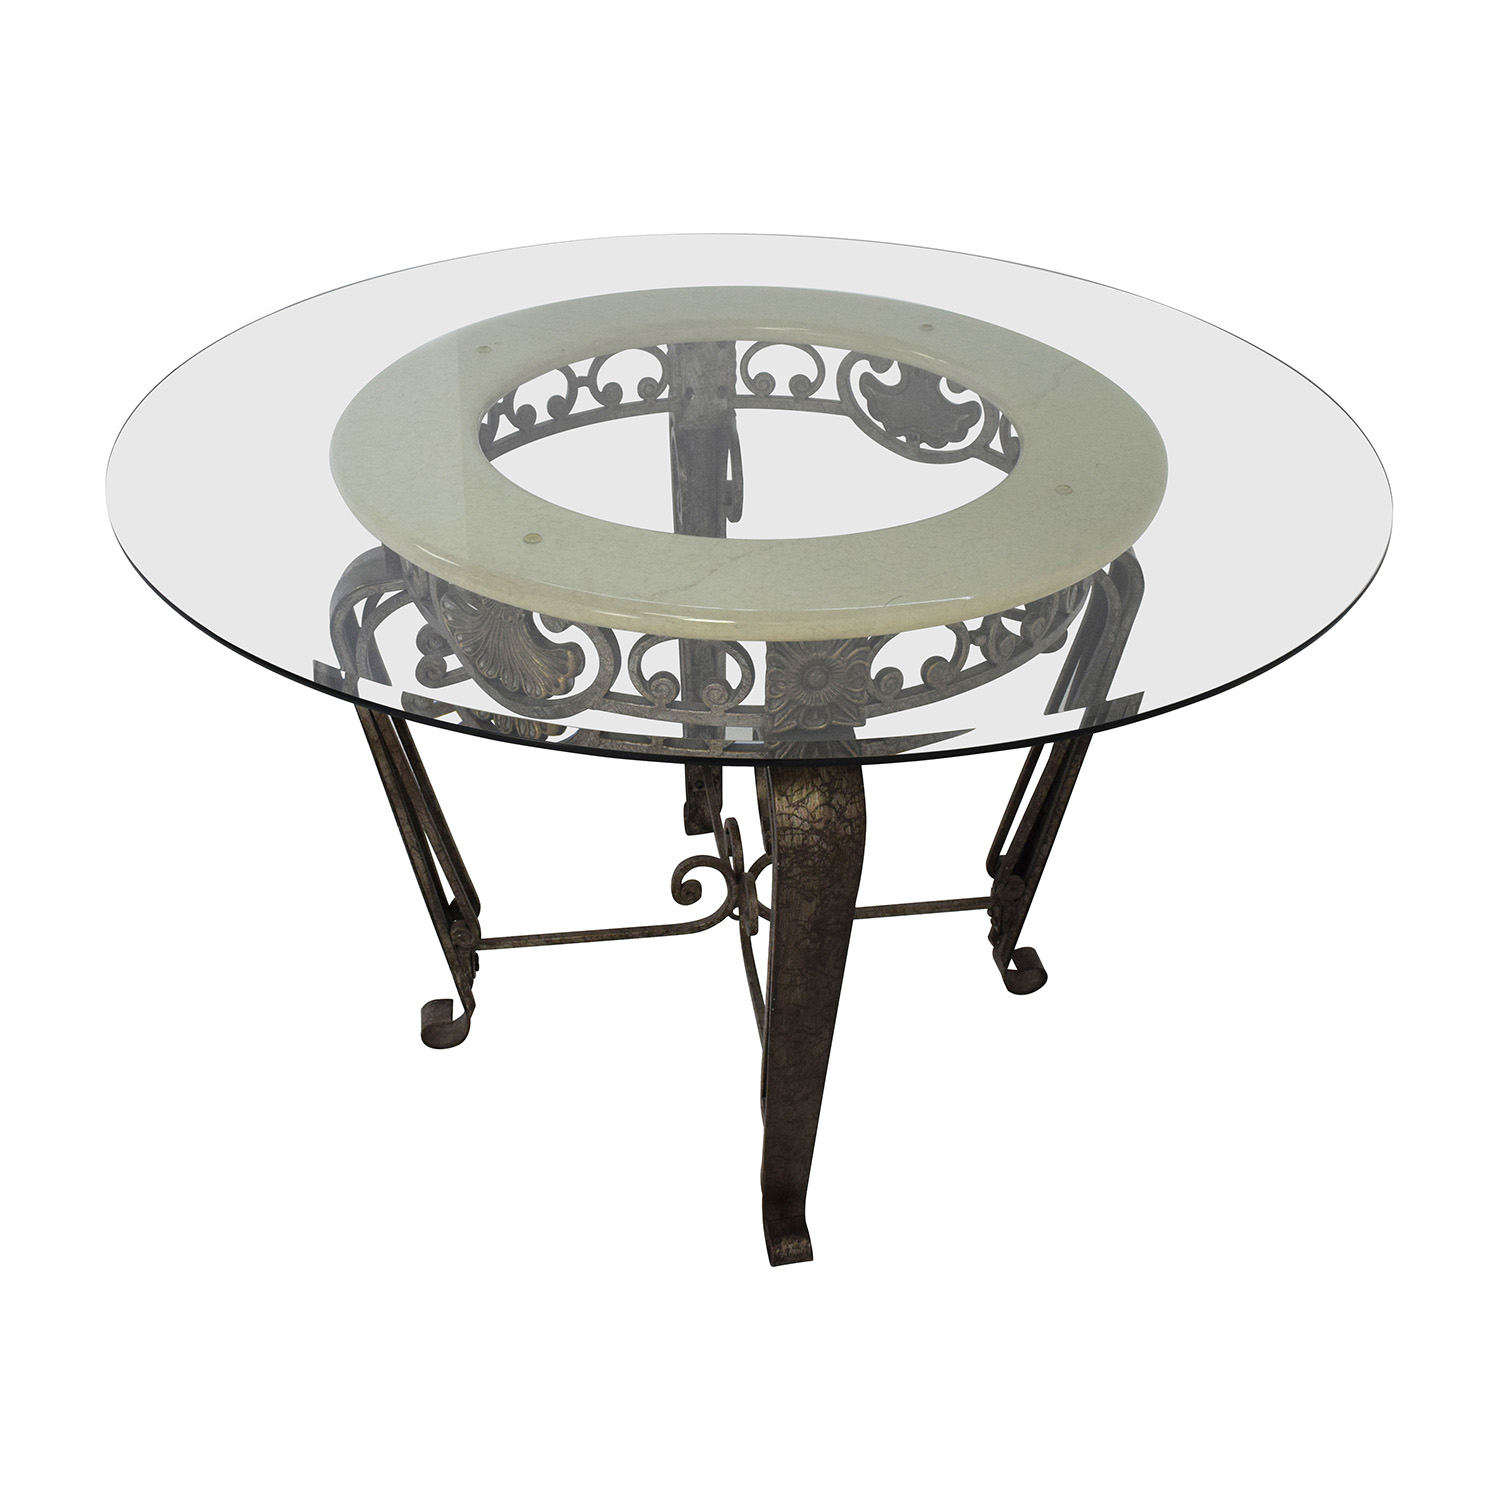 84 OFF Scroll Metal and Glass Top Dining Table Tables : used scroll metal and glass top dining table from www.furnishare.com size 1500 x 1500 jpeg 227kB